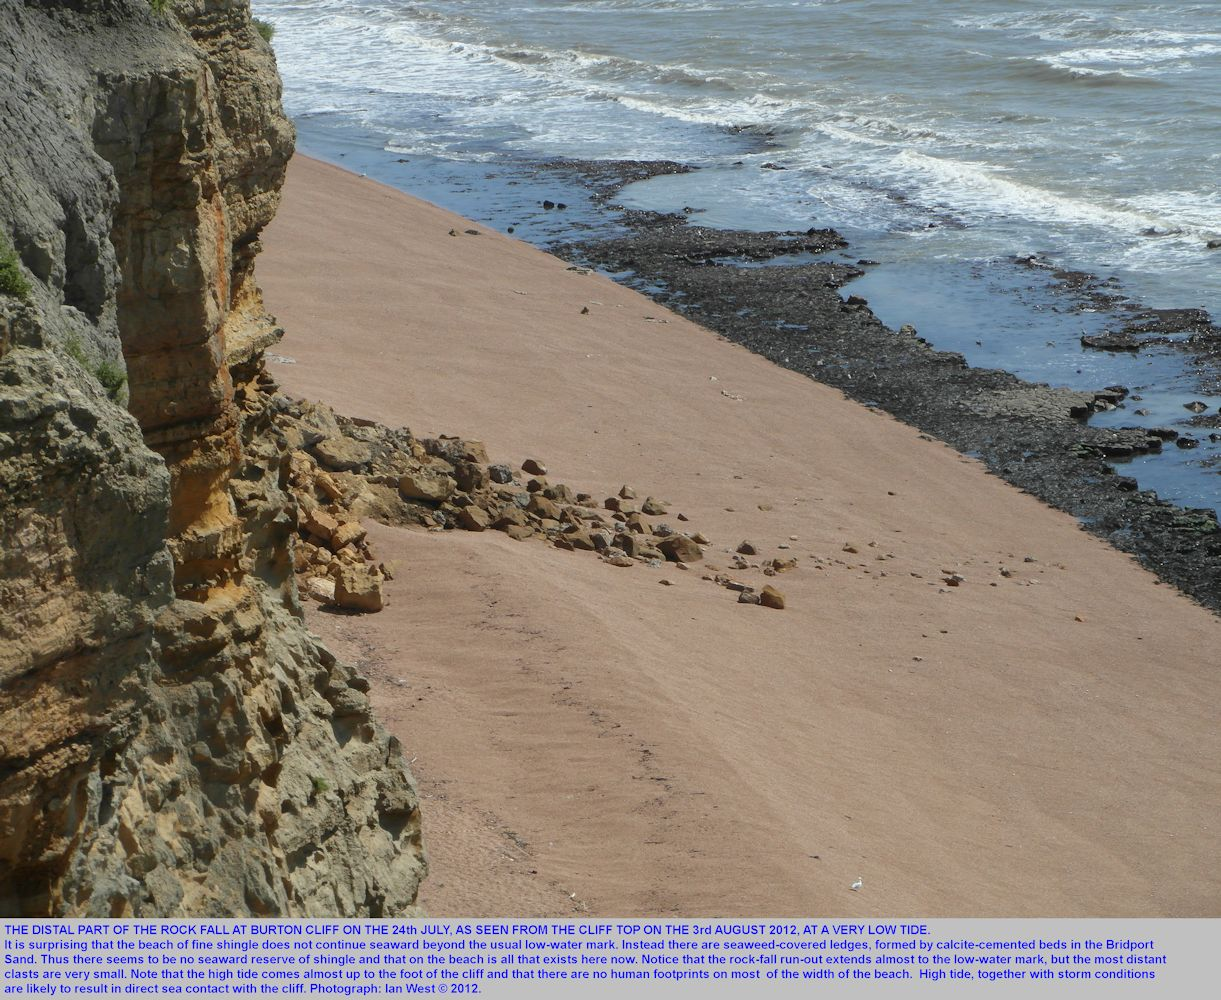 A view of the rock fall at Burton Cliff, seen on 3rd August 2012 from the cliff top to the northwest